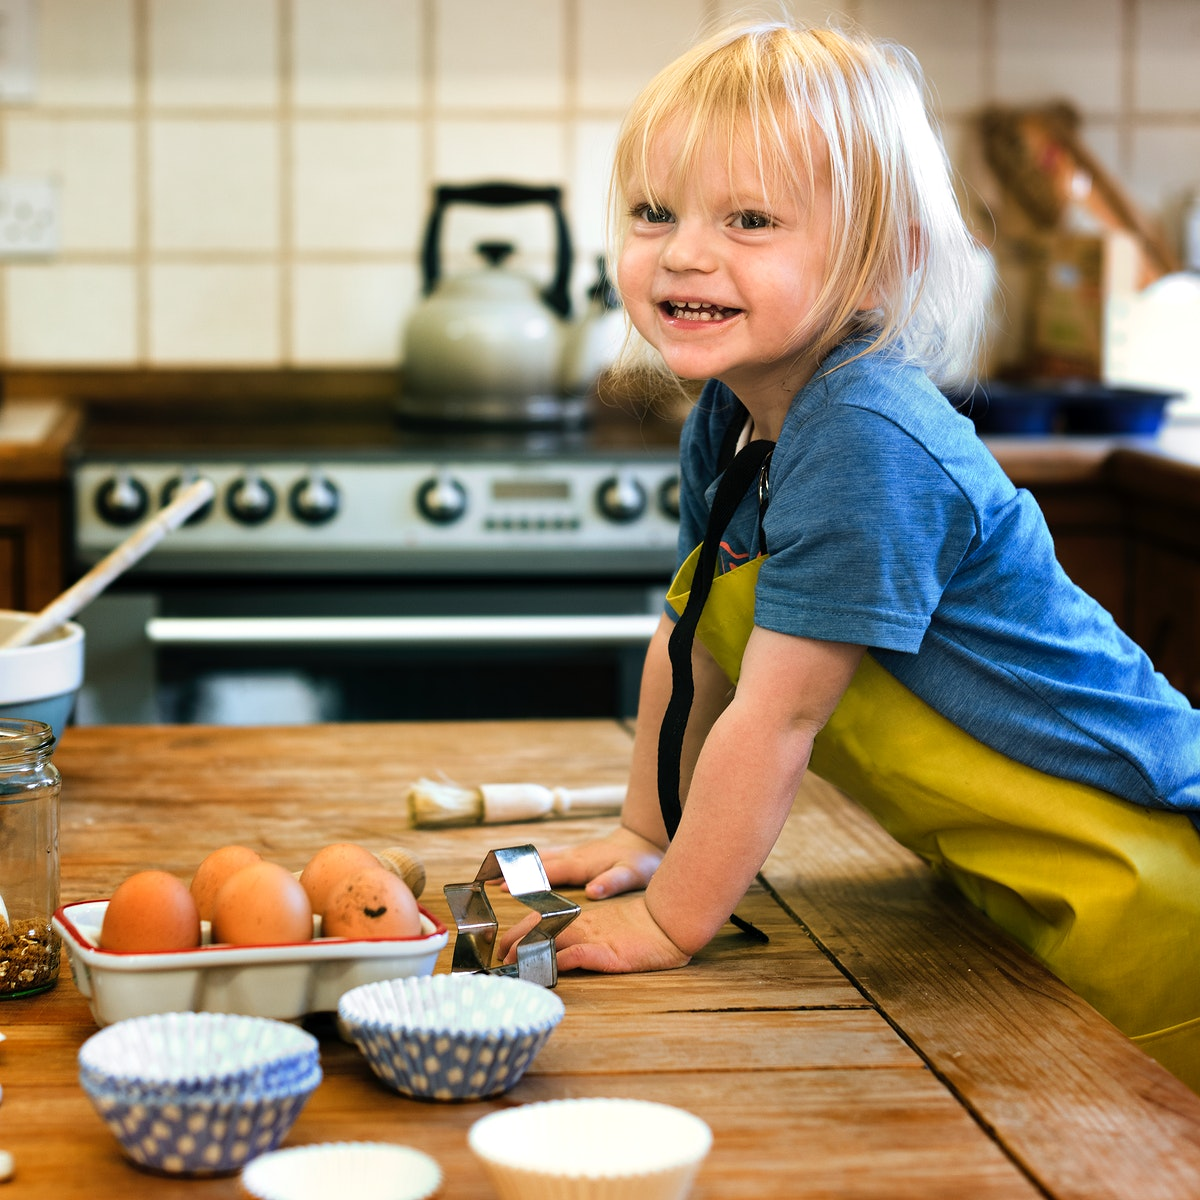 Kid Cooking Class Baking Concept